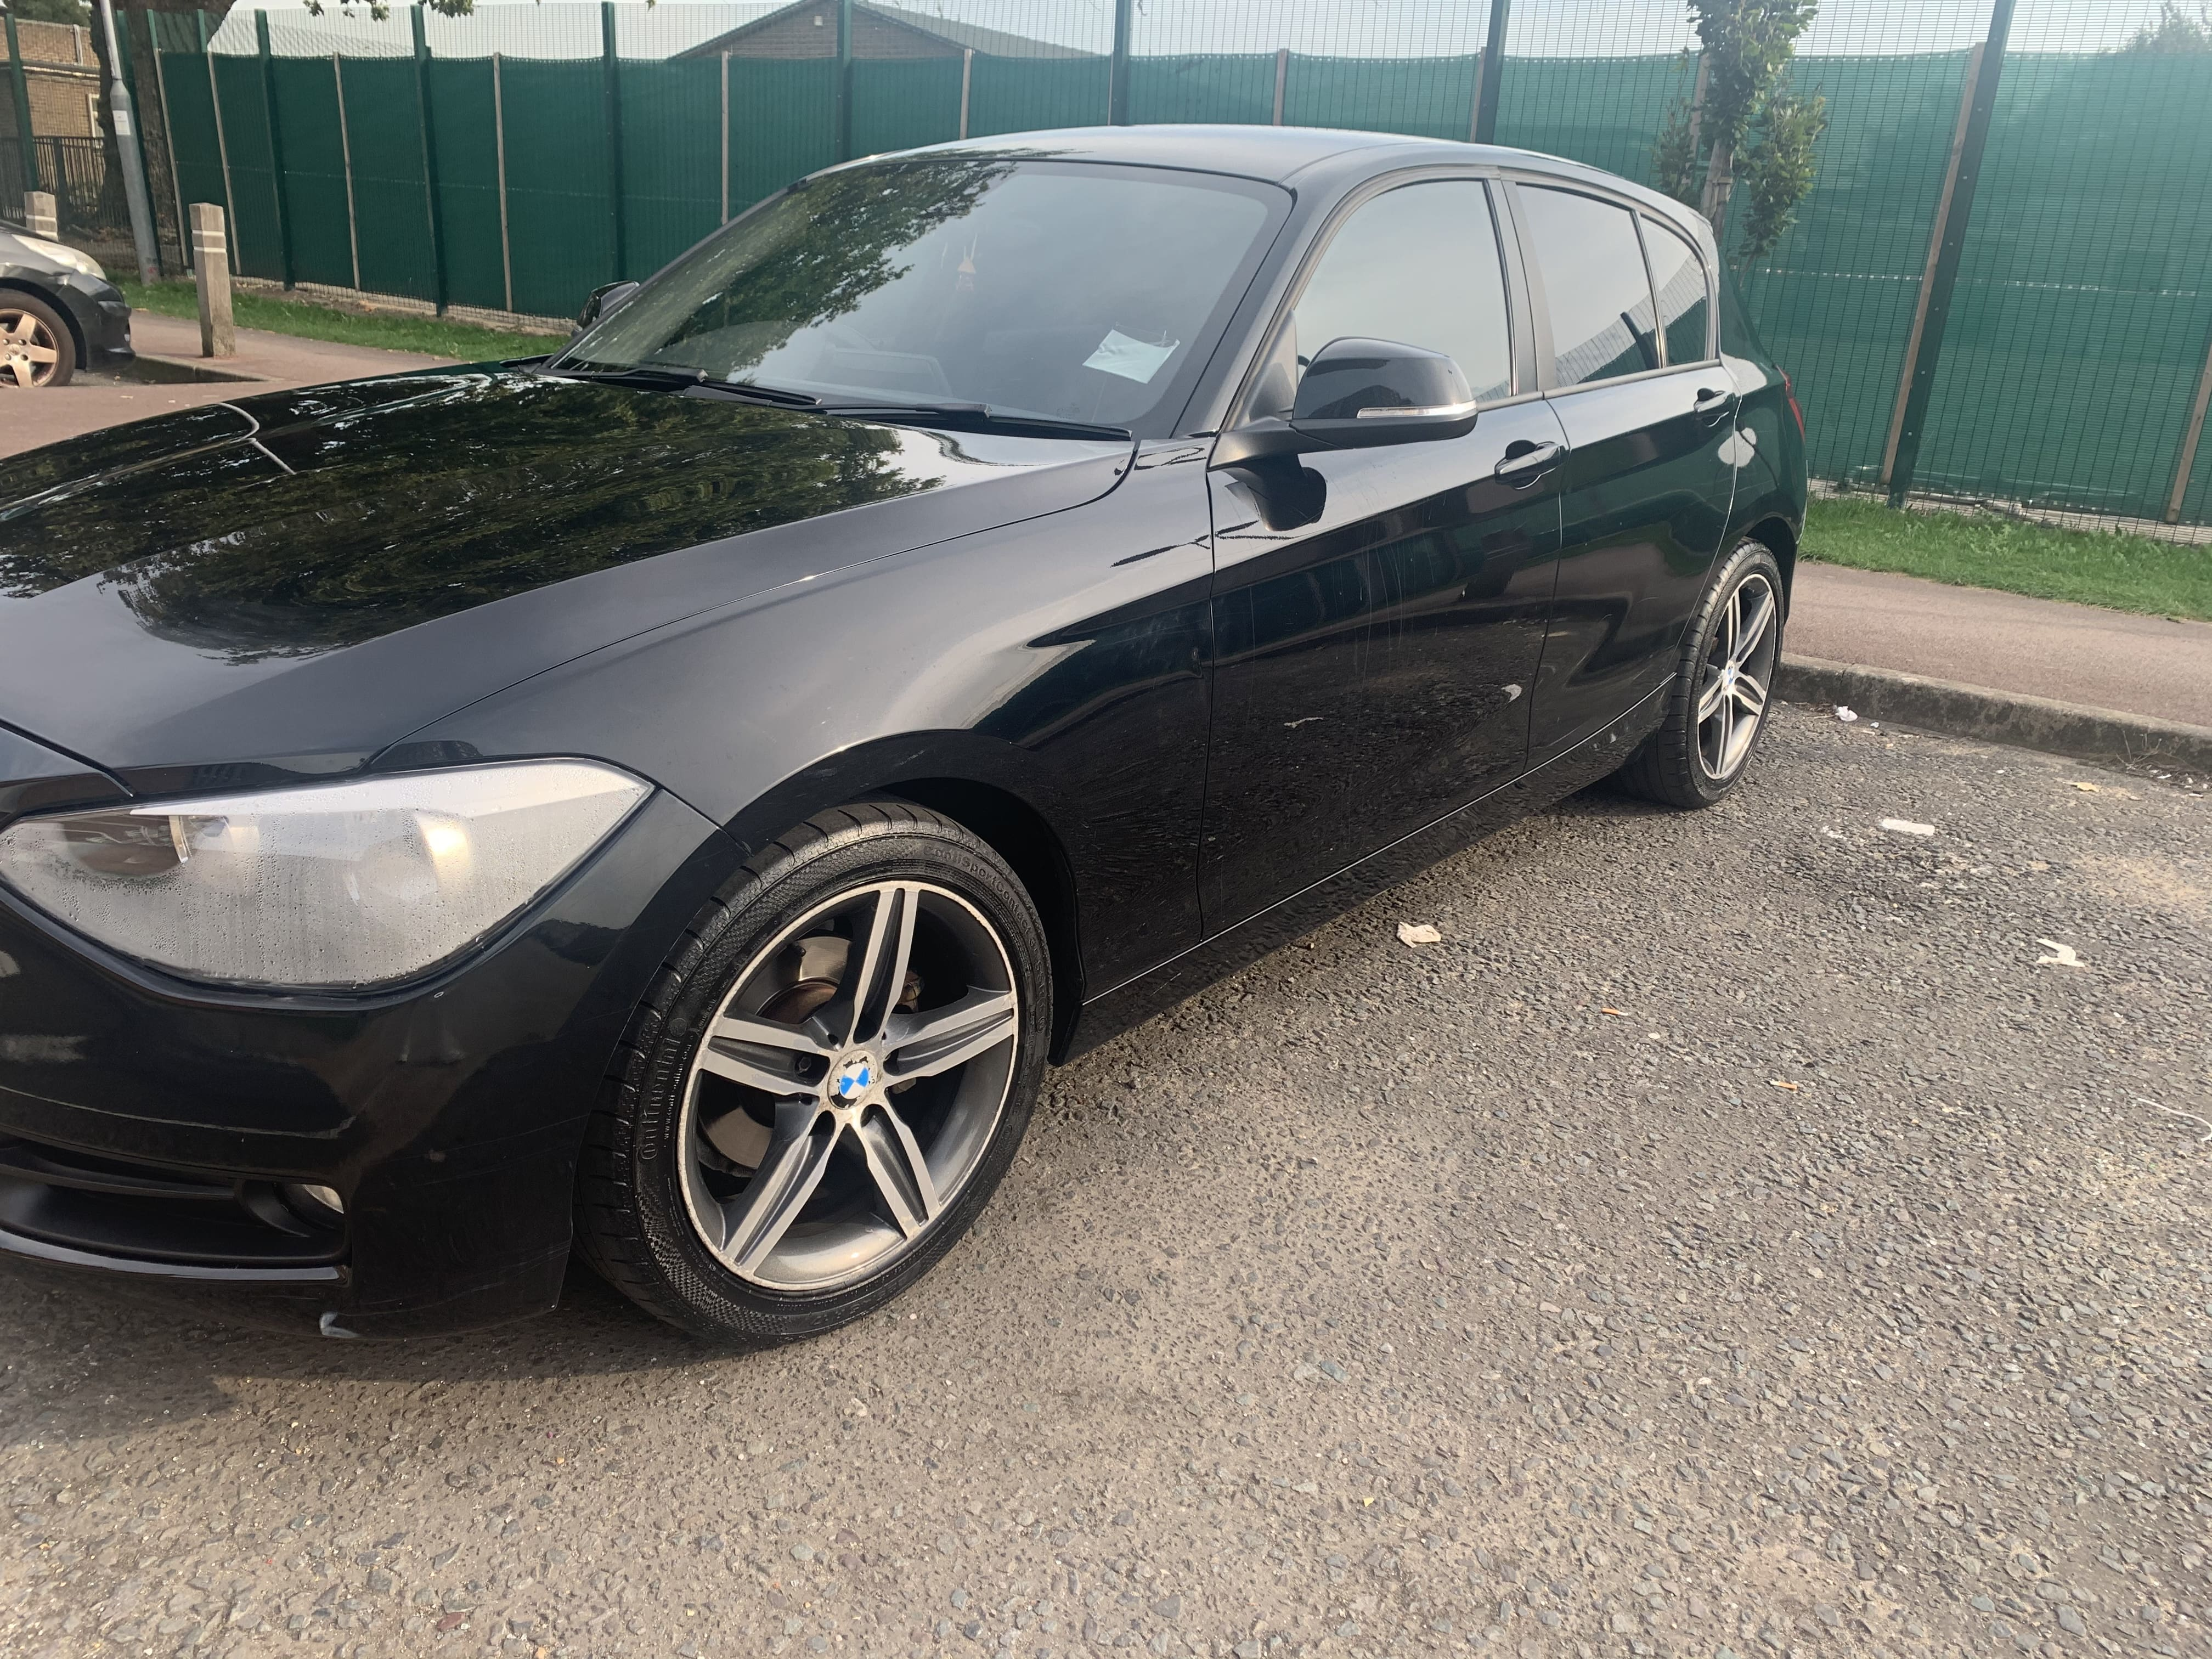 LOW MILEAGE, RELIABLE, TINTED, FULL BMW SERVICE, FRESH MOT BMW 1 Series